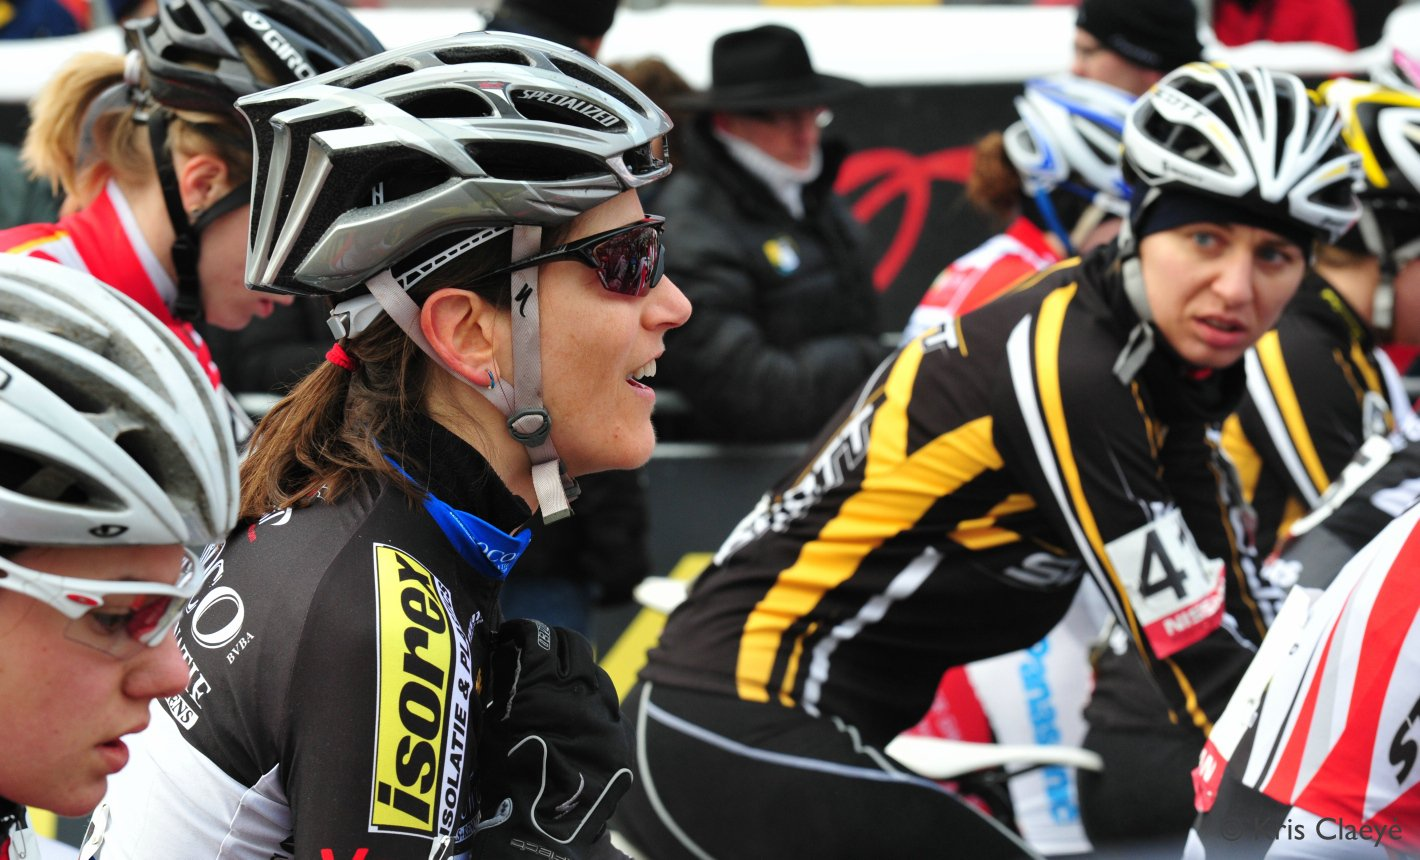 Looking optimistic at the start line in Zolder ©Kris Claeye